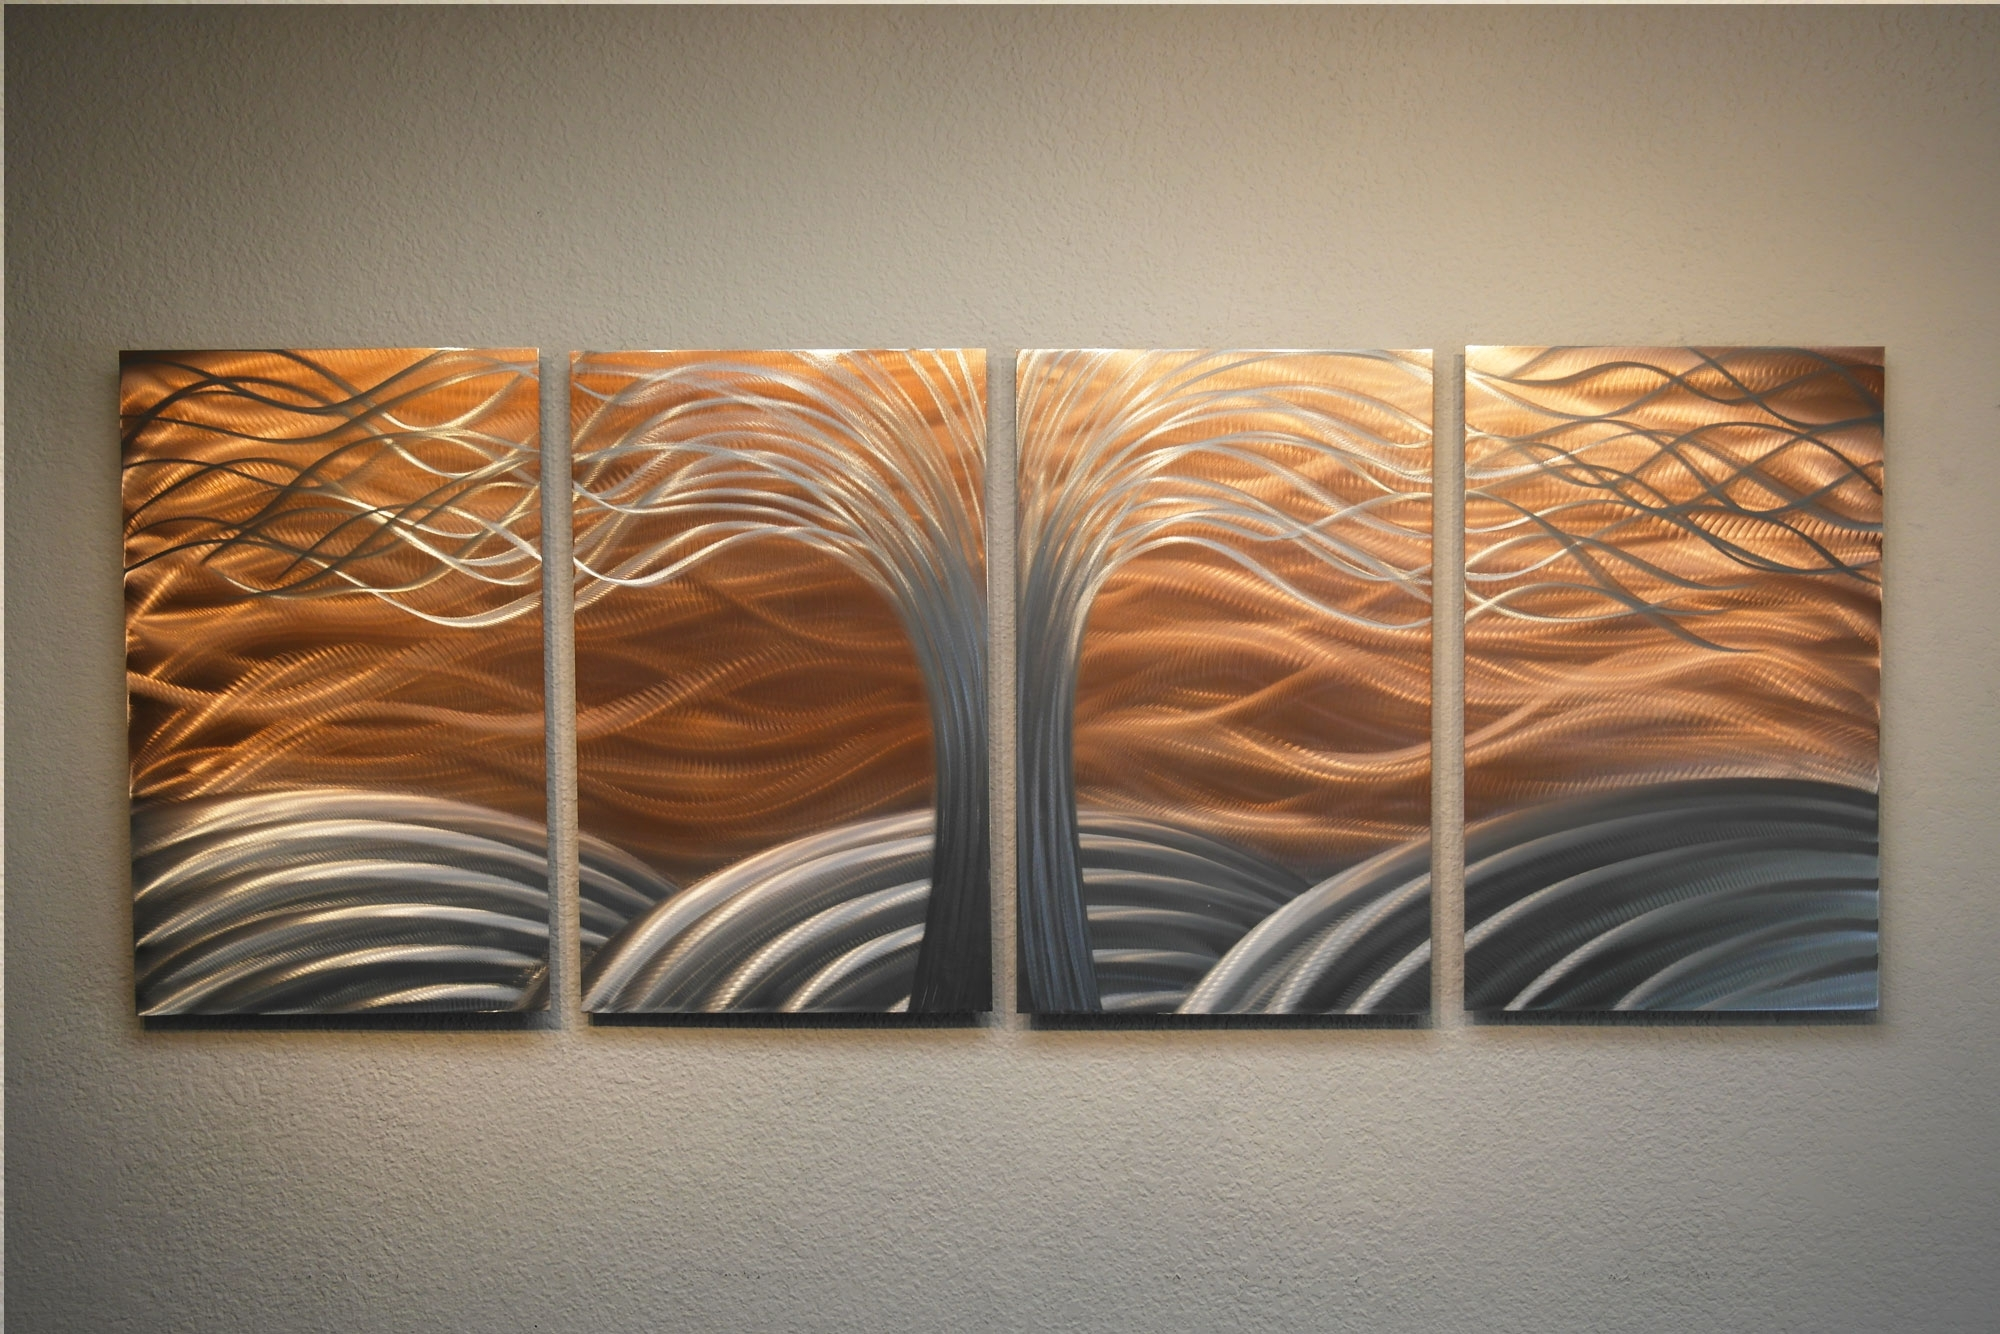 Tree Of Life Bright Copper – Metal Wall Art Abstract Sculpture Intended For Most Recent Tree Of Life Wall Art (View 11 of 15)